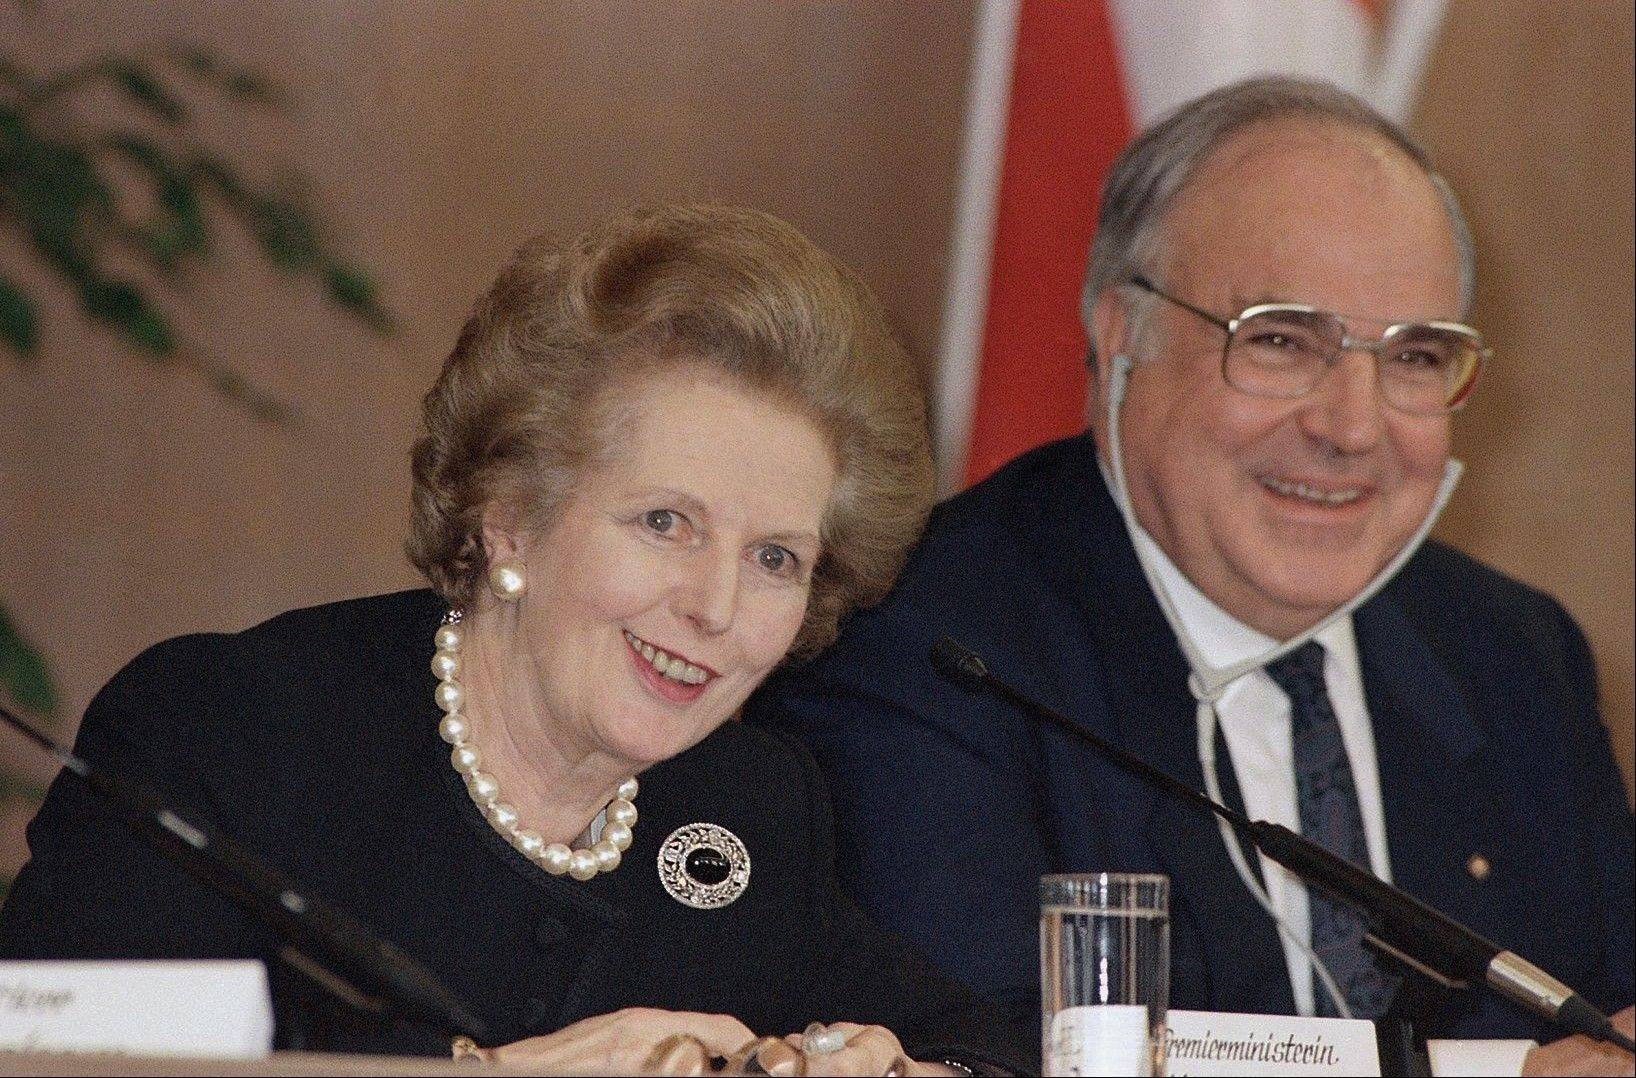 This is a Tuesday, Feb. 21, 1989 file photo of British Prime Minister Margaret Thatcher and West German Chancellor Helmut Kohl during a news conference in the Frankfurt City Hall in Frankfurt Germany. Former British Prime Minister Margaret Thatcher, whose conservative ideas made an enduring impact on Britain, died Monday April 8, 2013. S